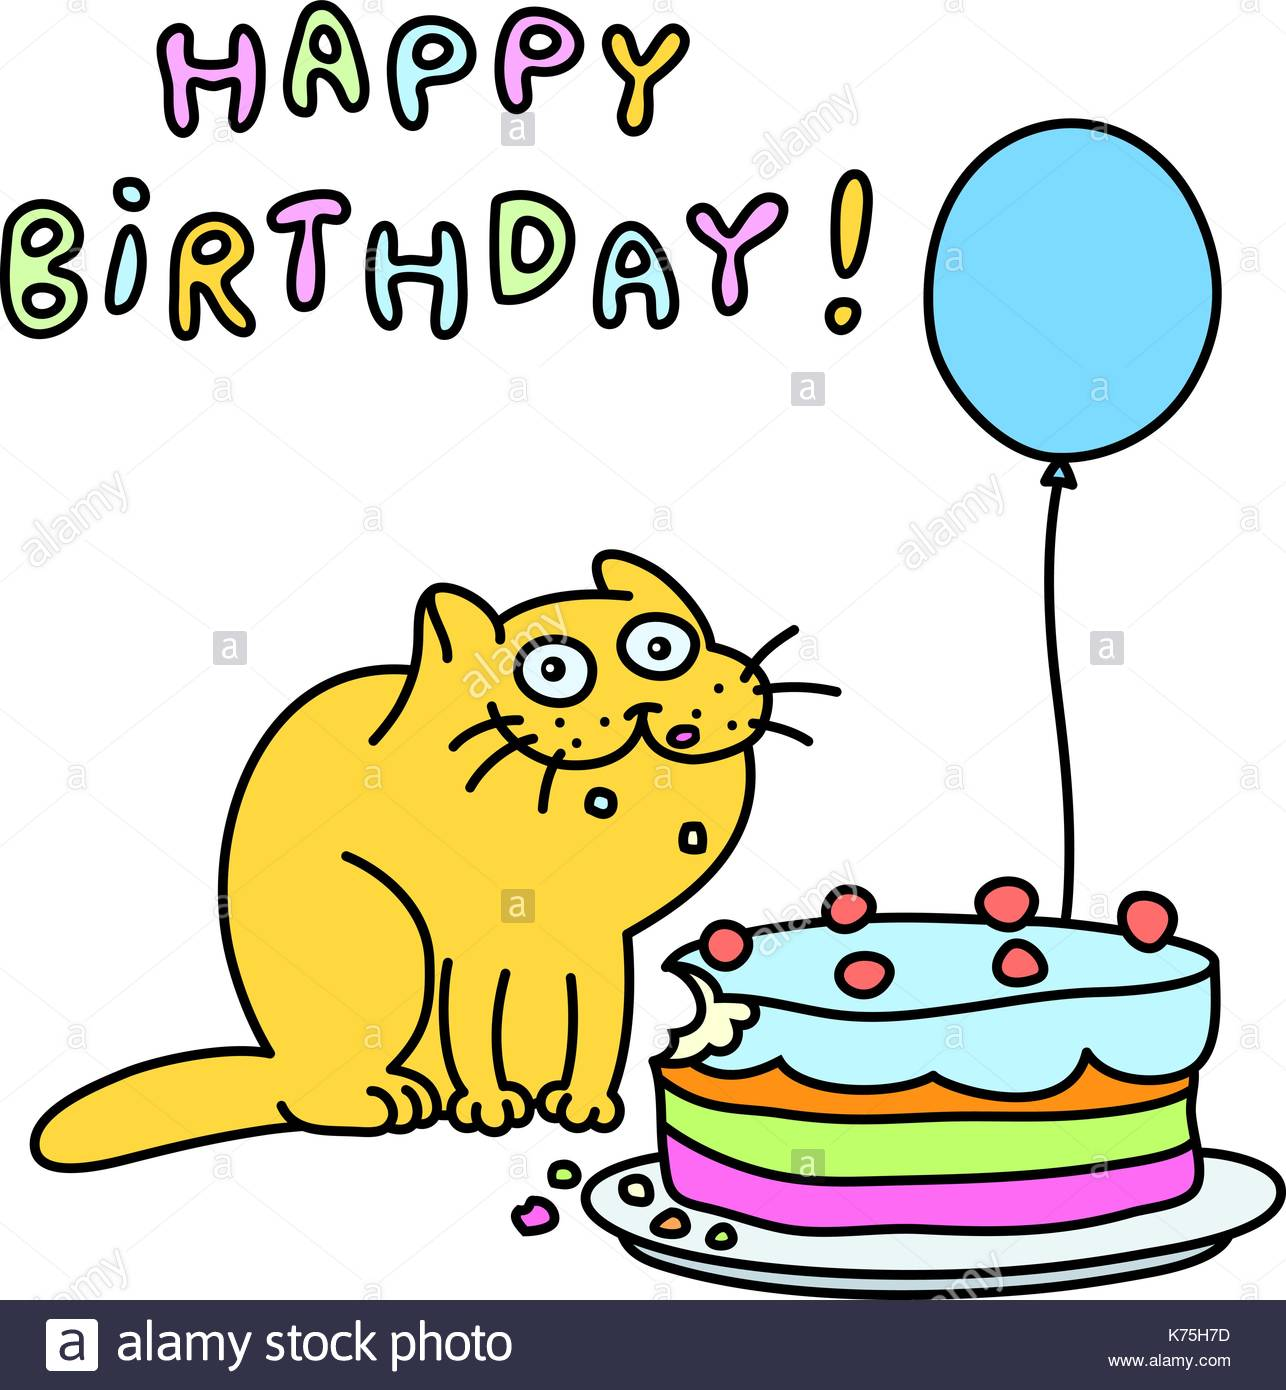 Happy Birthday Cat Clipart.